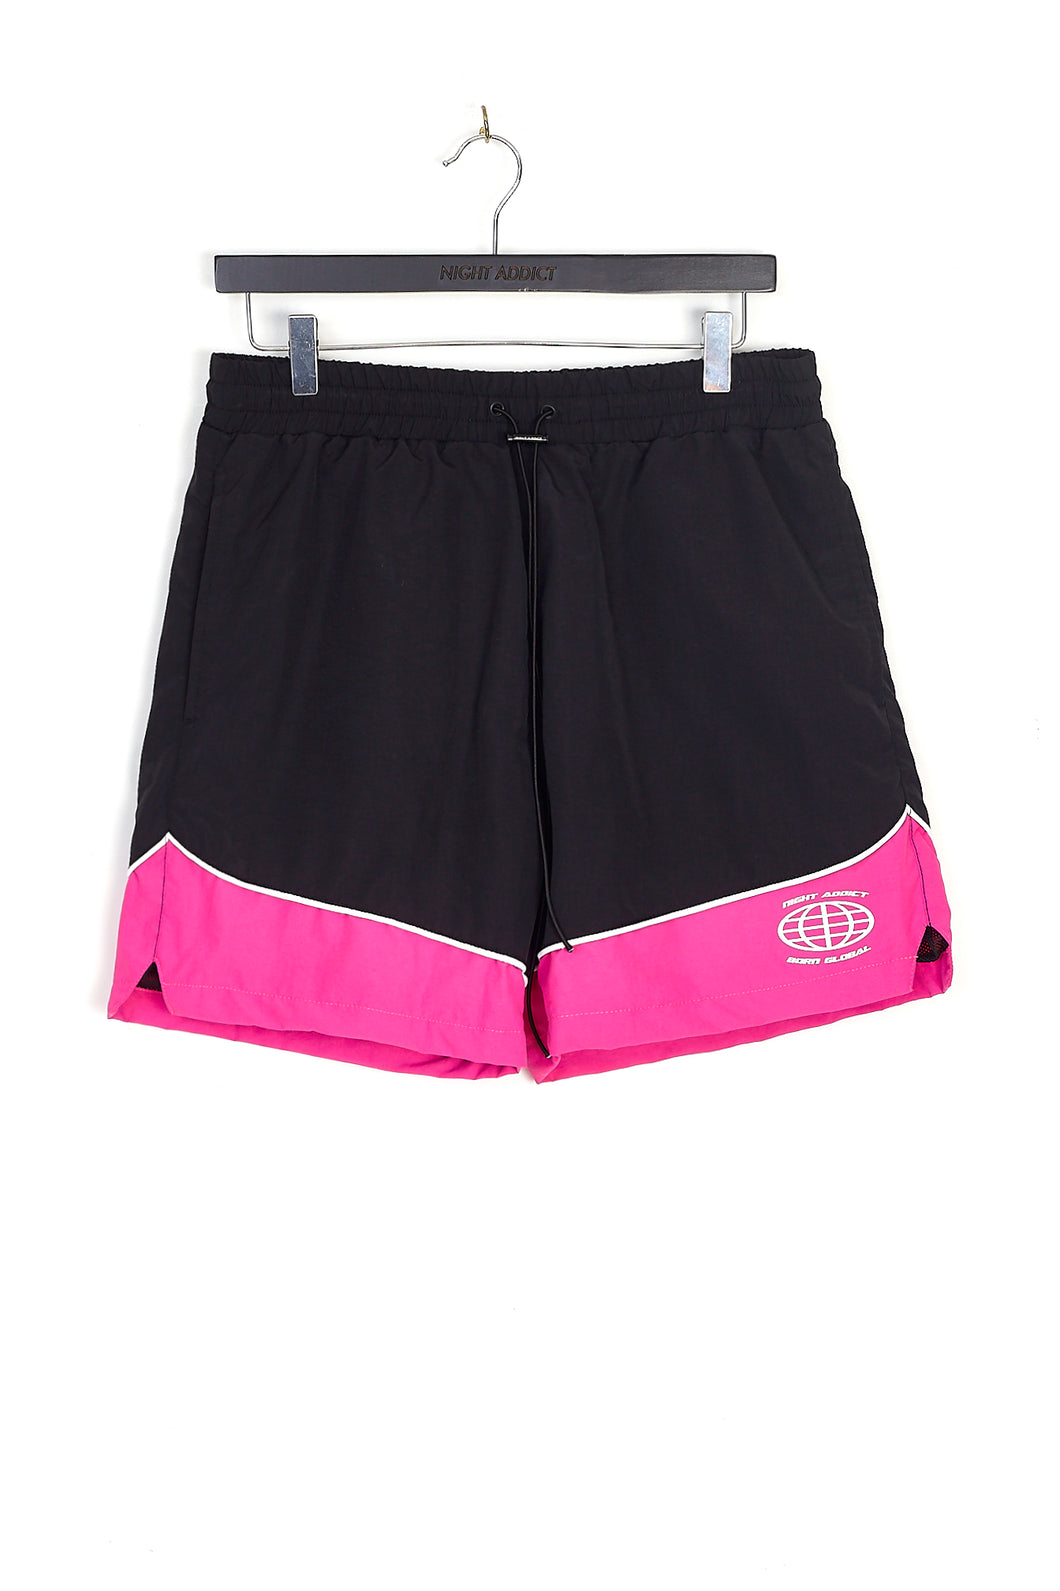 RETRO PINK PANEL NYLON SHORTS